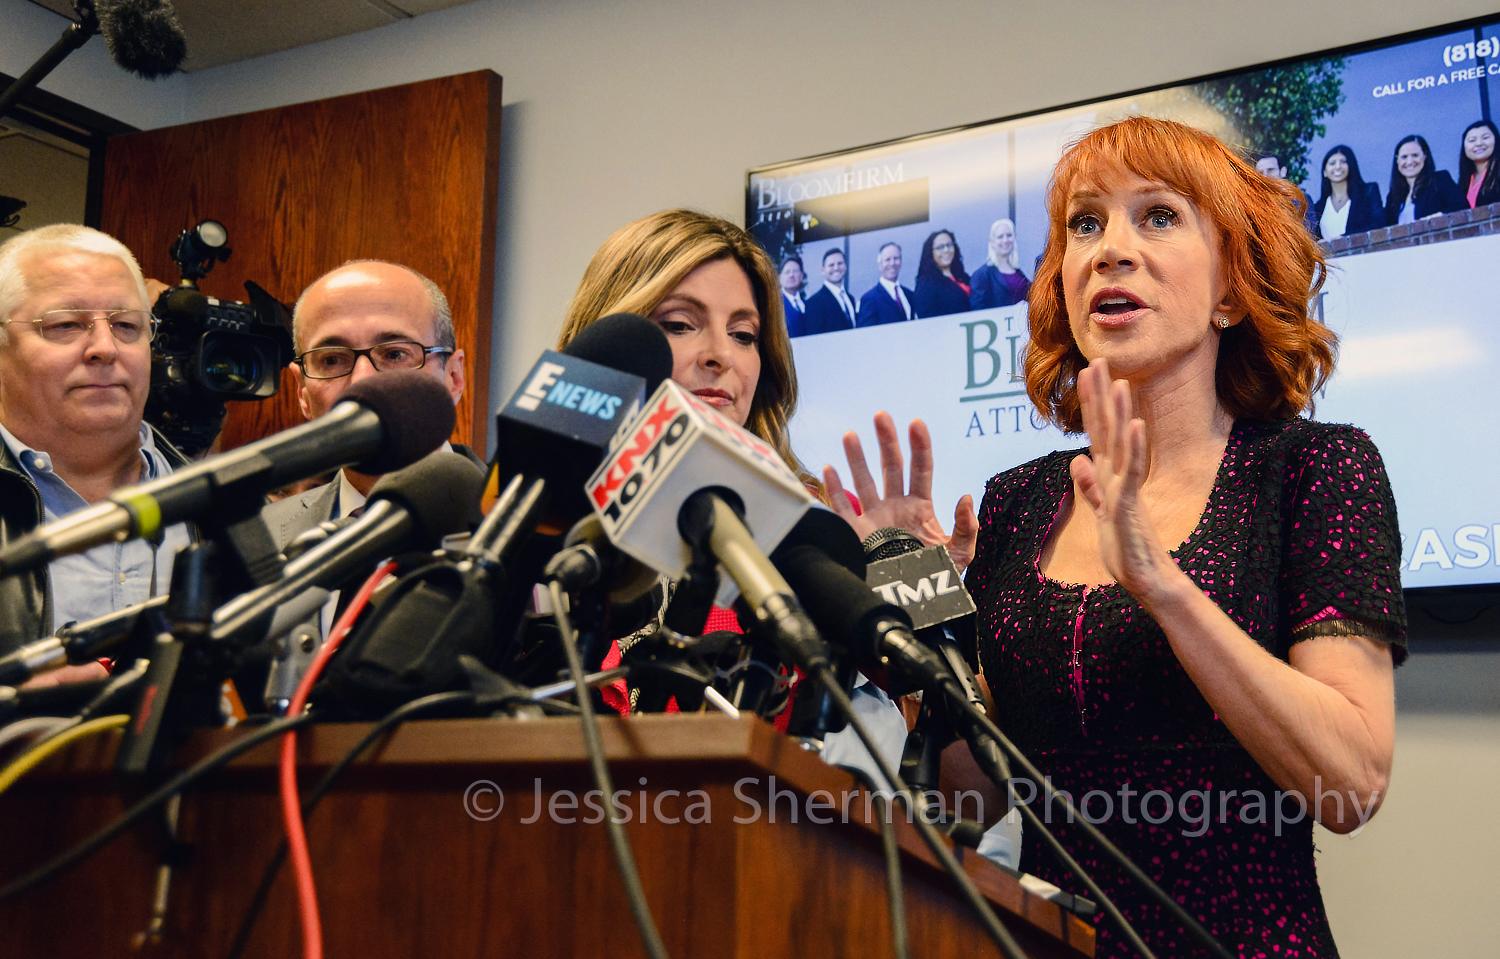 Kathy_Griffin_Jessica_Sherman3WEB (1 of 1).jpg